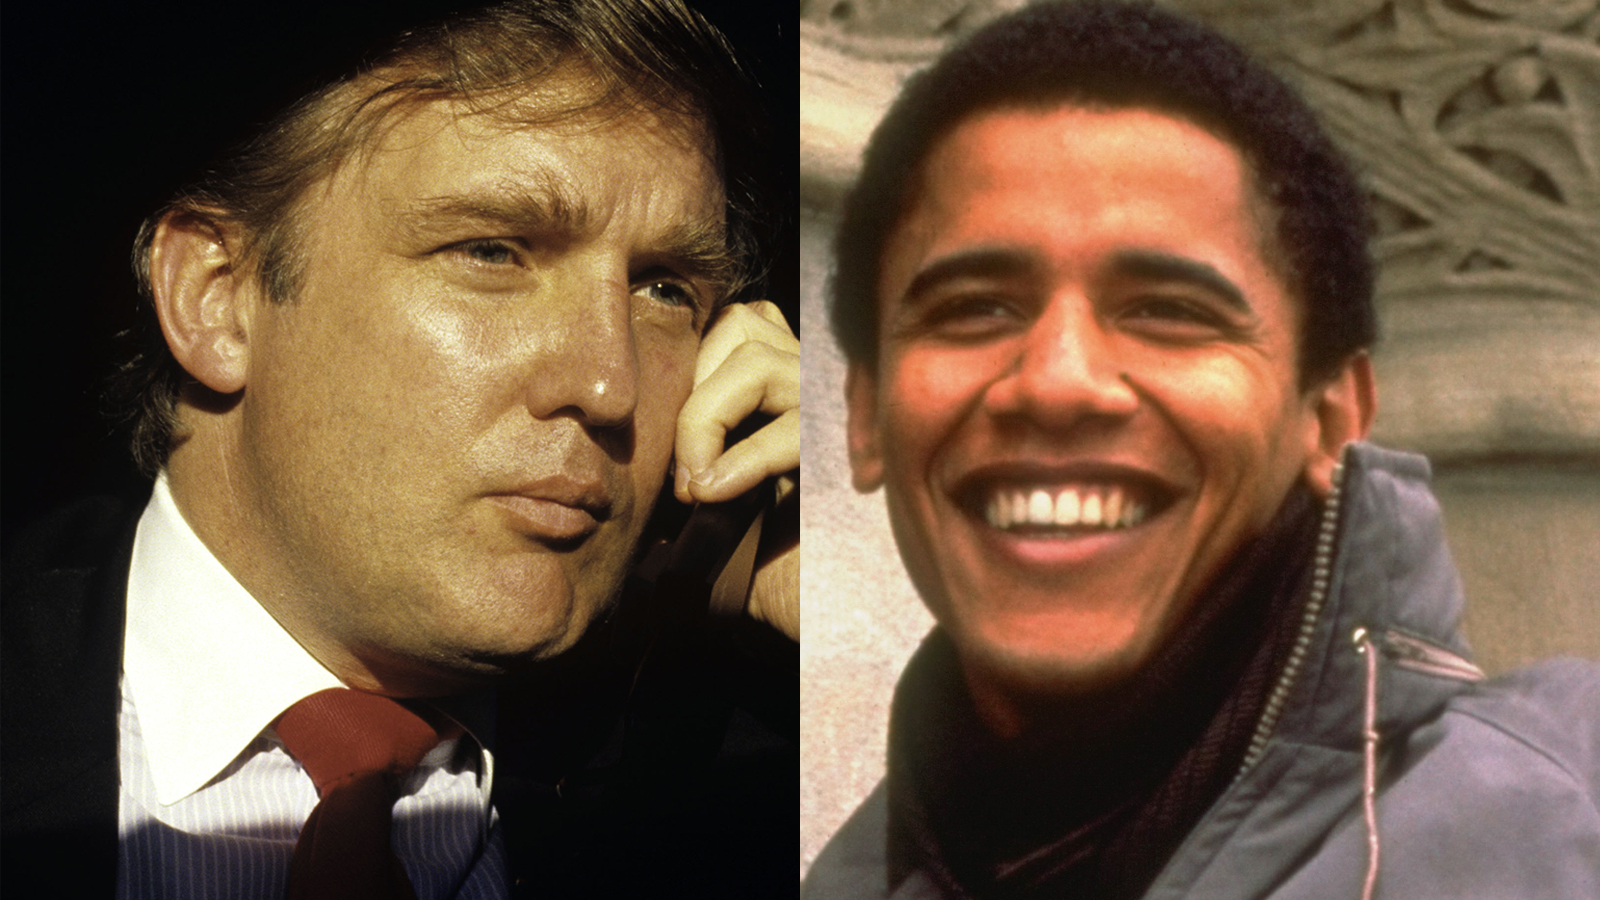 Young Obama Said the American Dream Is to Be Donald Trump ...